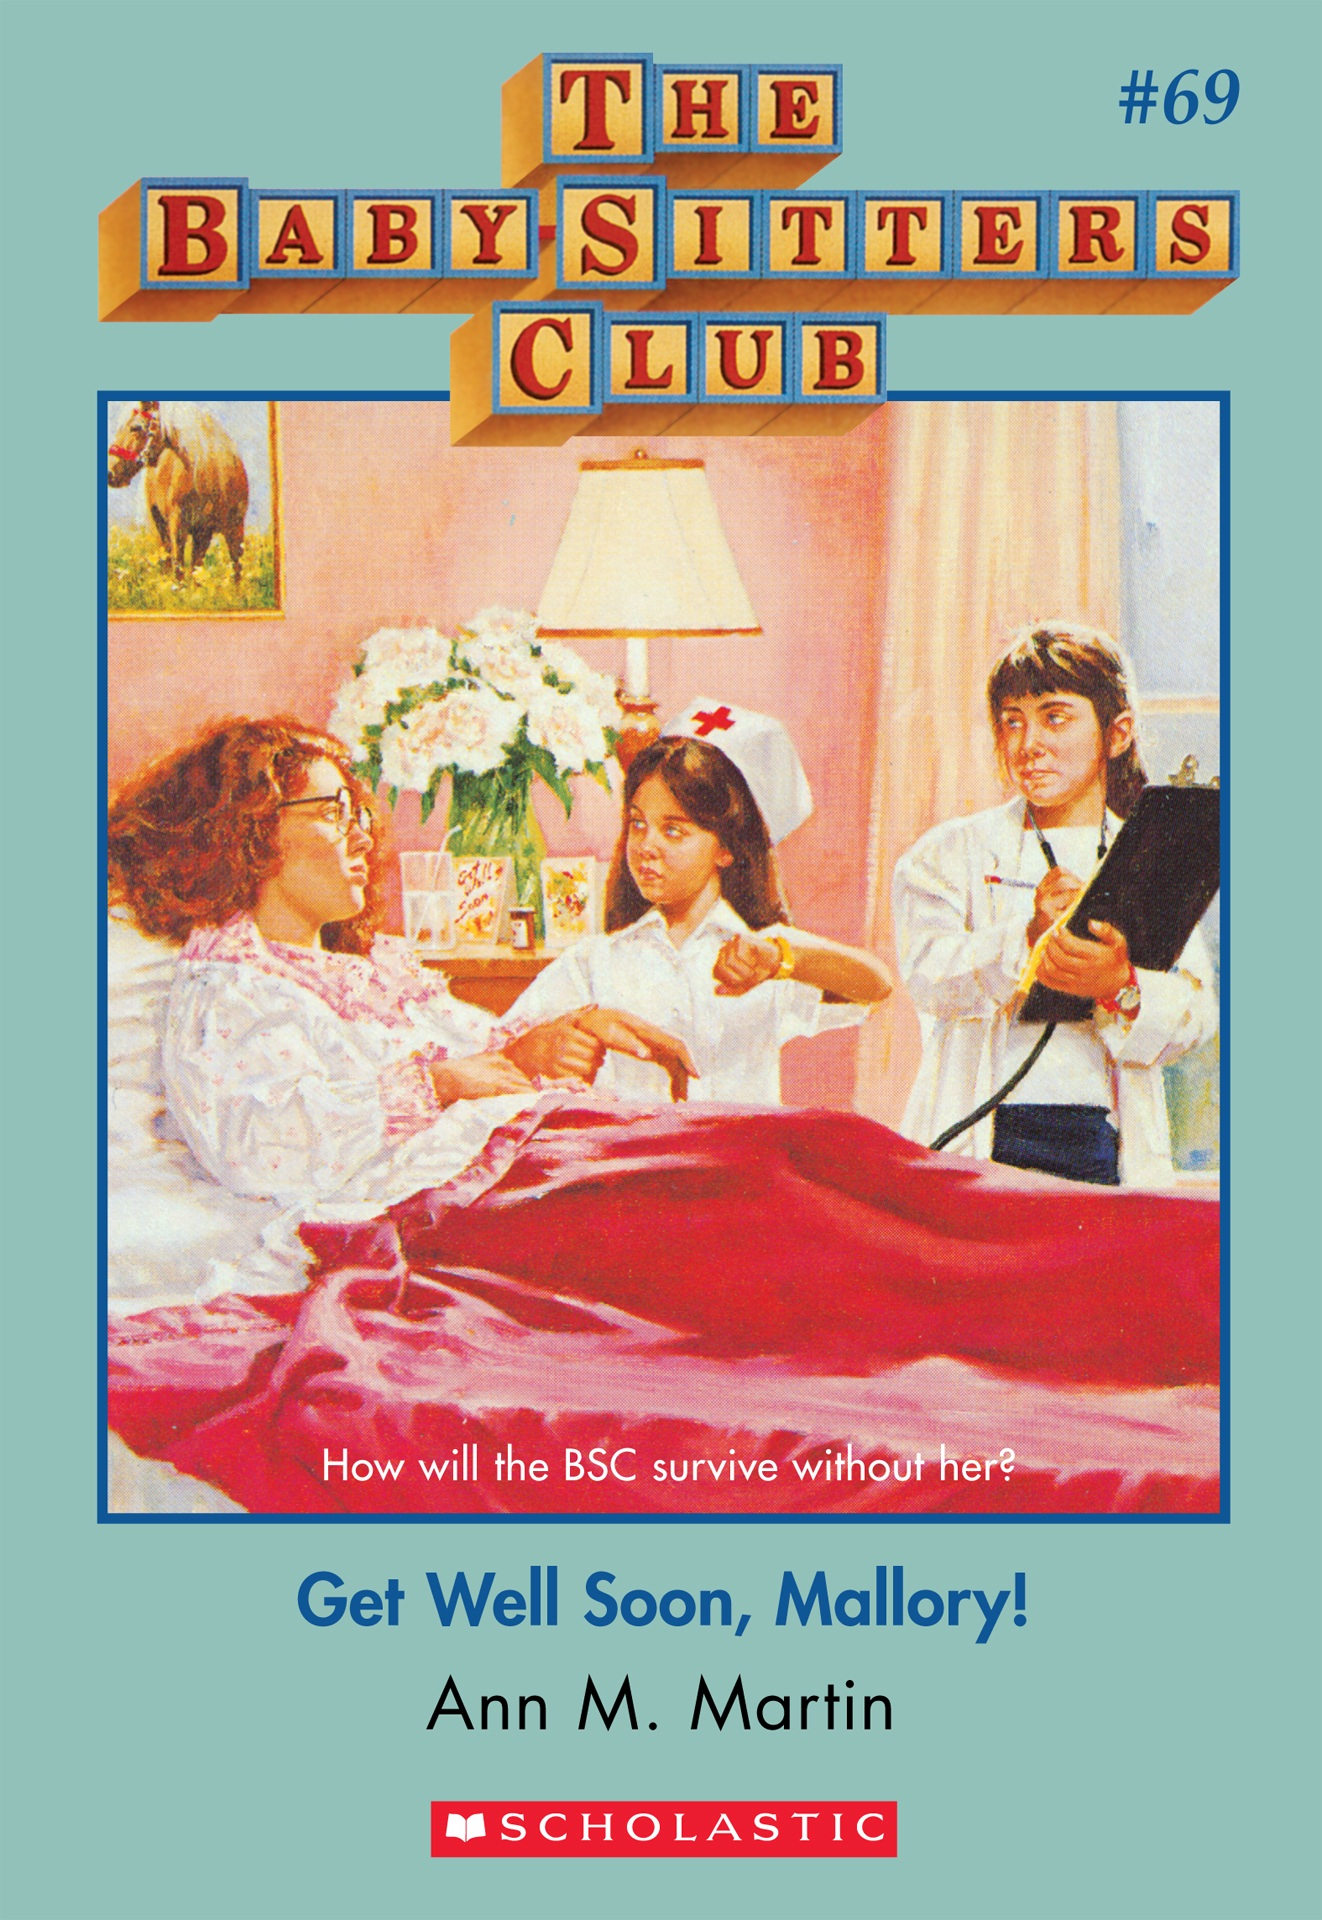 Get Well Soon, Mallory!